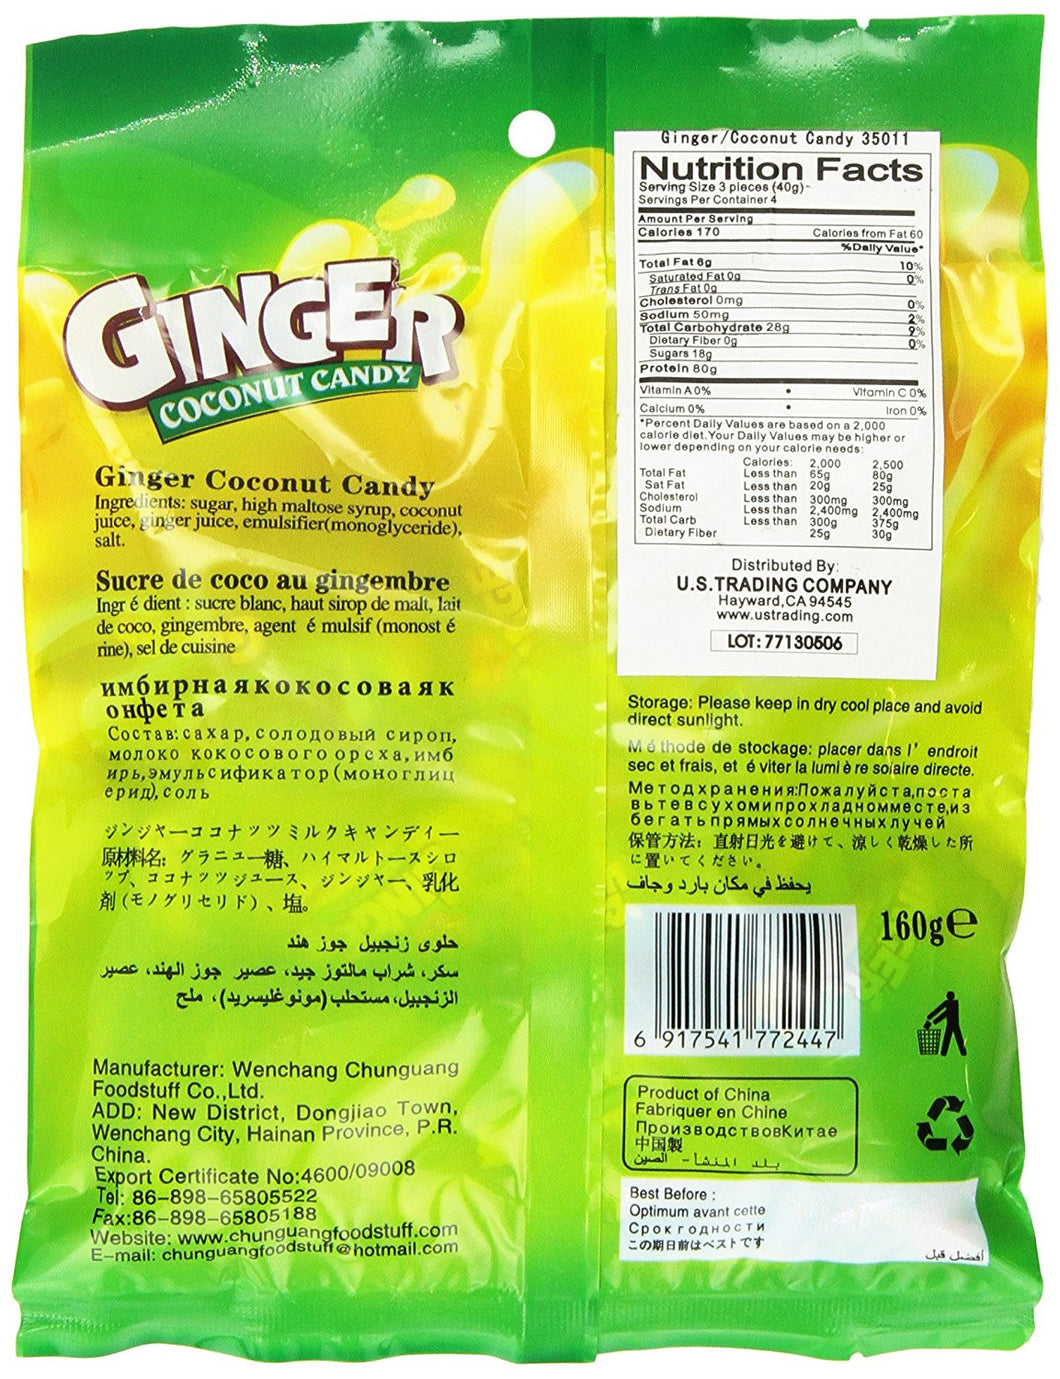 Chun Guang Ginger Coconut Candy, 5.6 Ounce